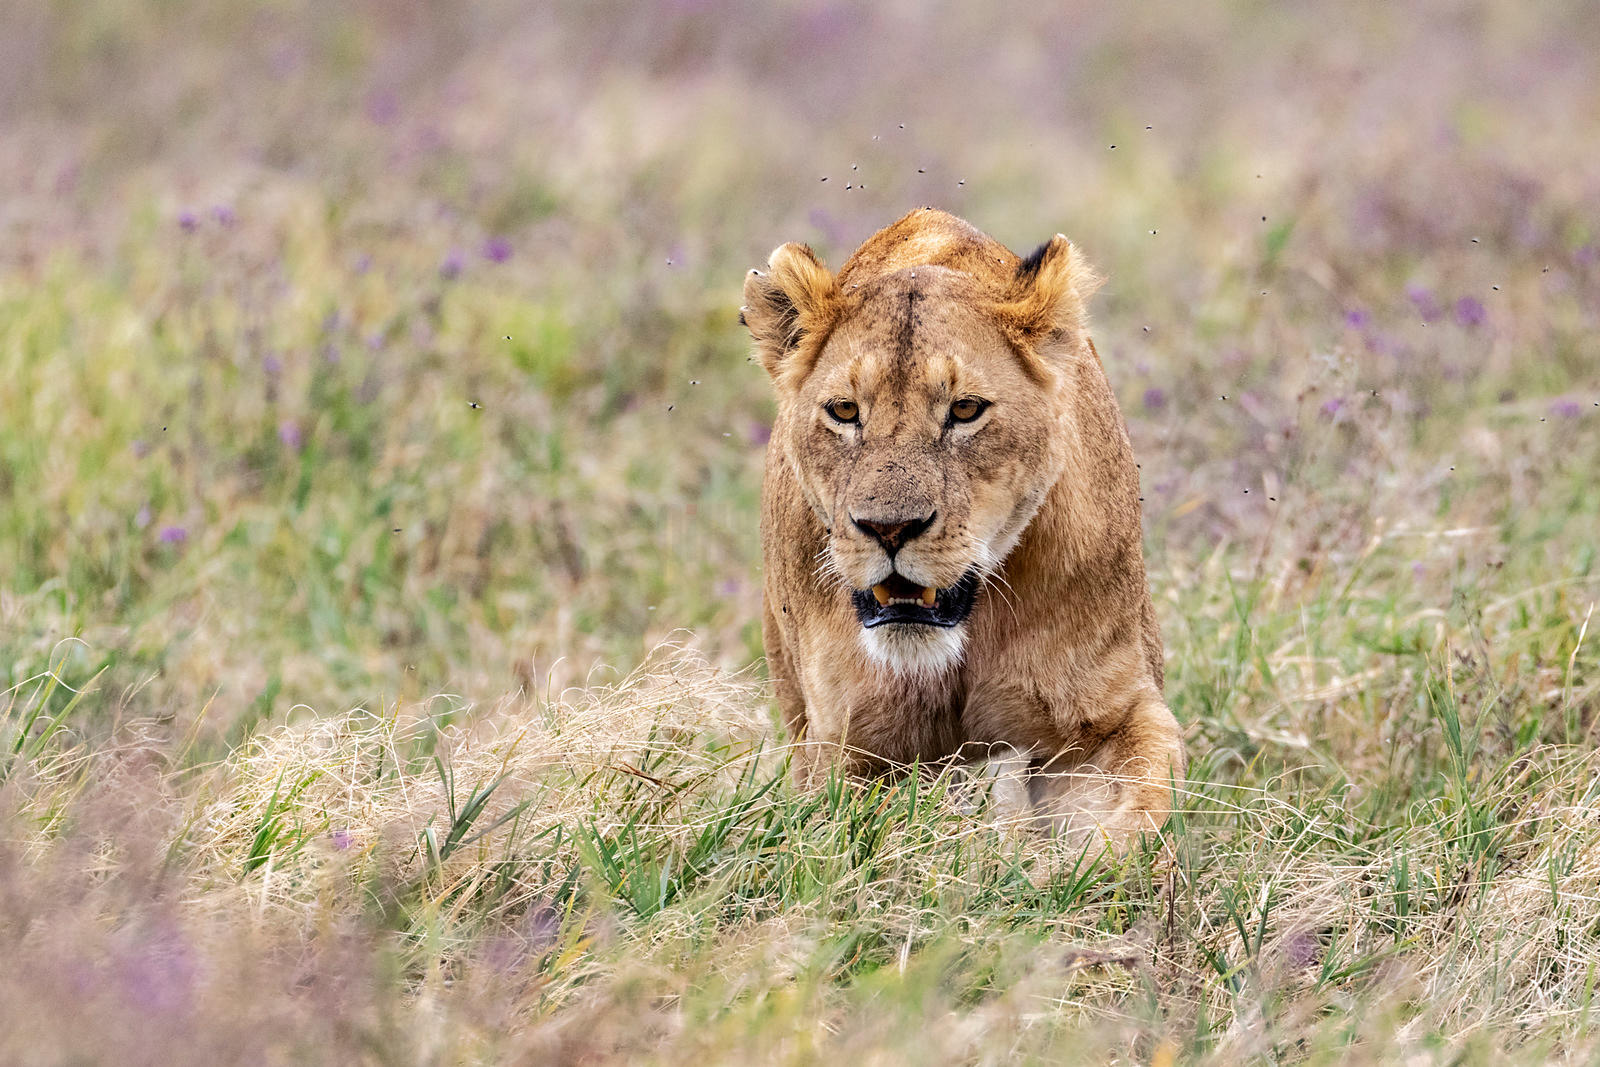 Lioness Walking through the Grass